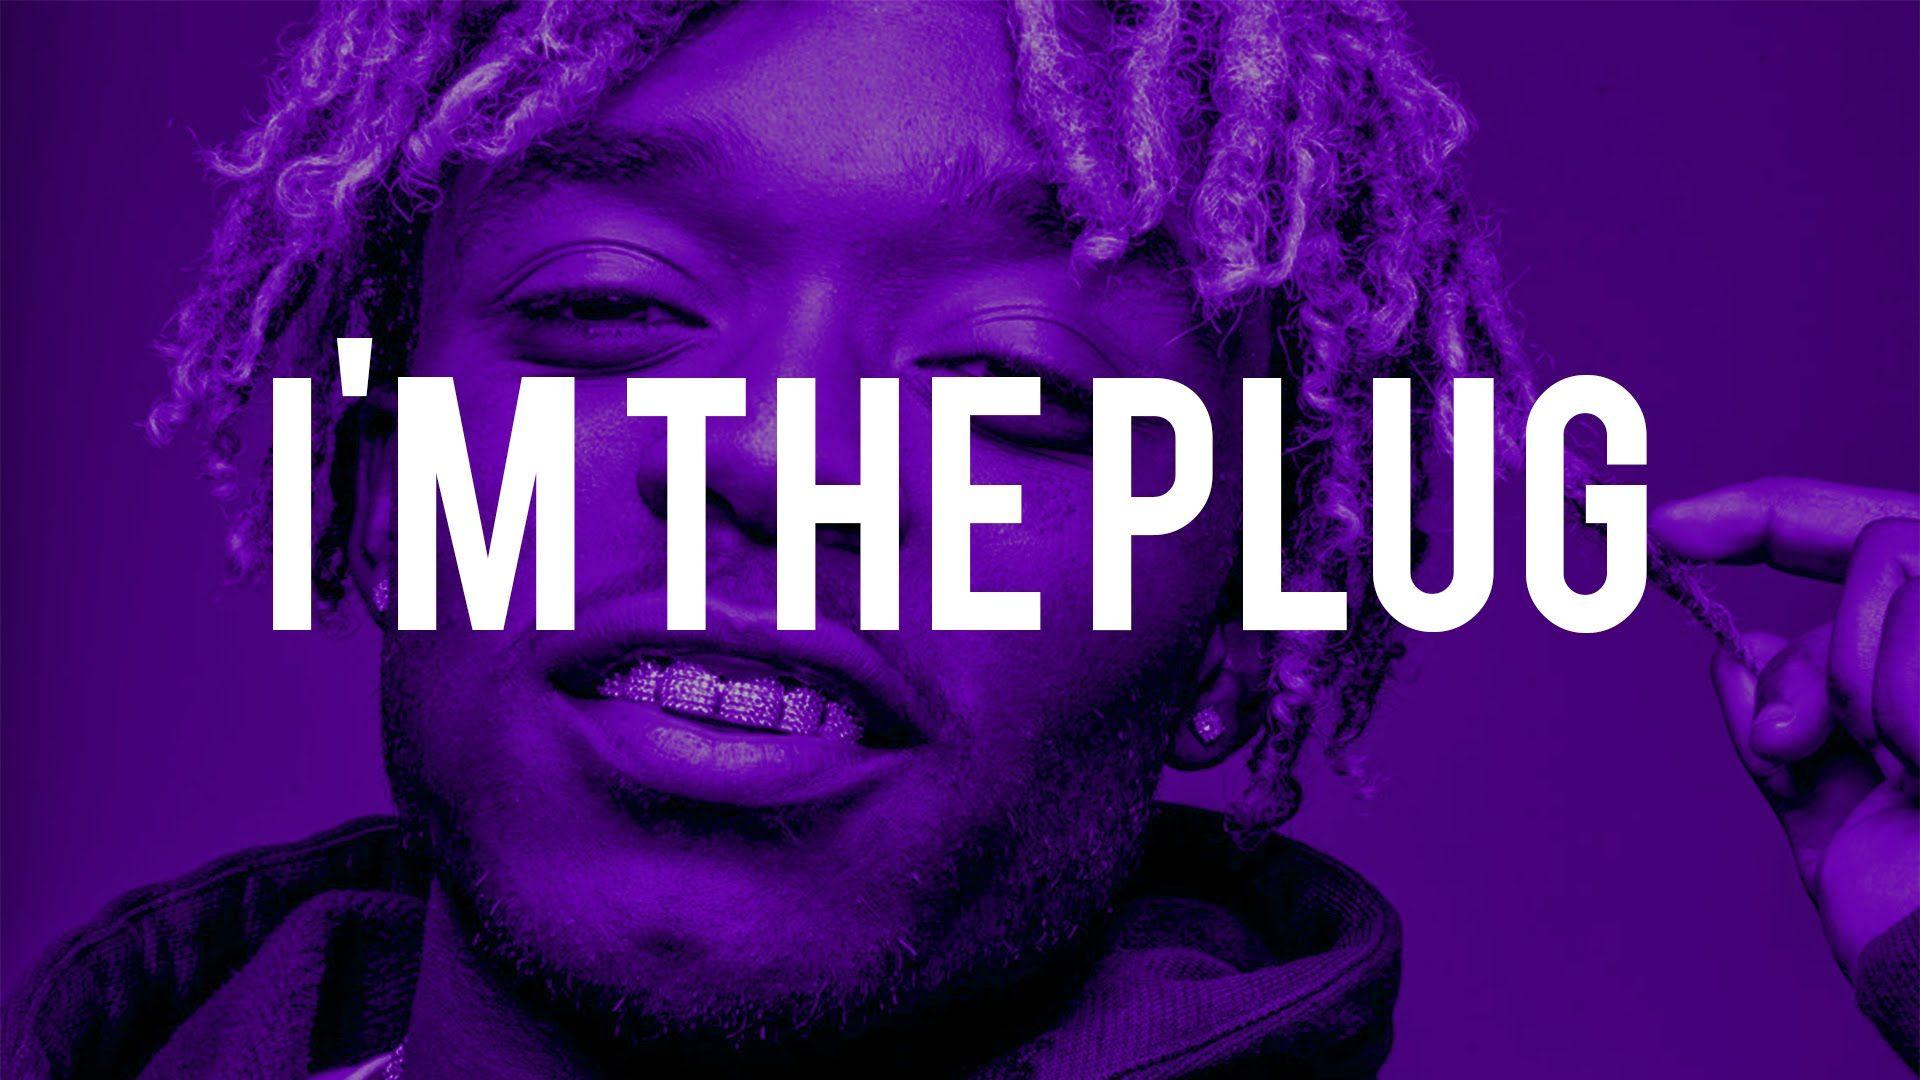 Lil Uzi Vert Desktop Background Posted By Samantha Sellers We've gathered more than 5 million images uploaded by our users and sorted them by the most popular ones. lil uzi vert desktop background posted